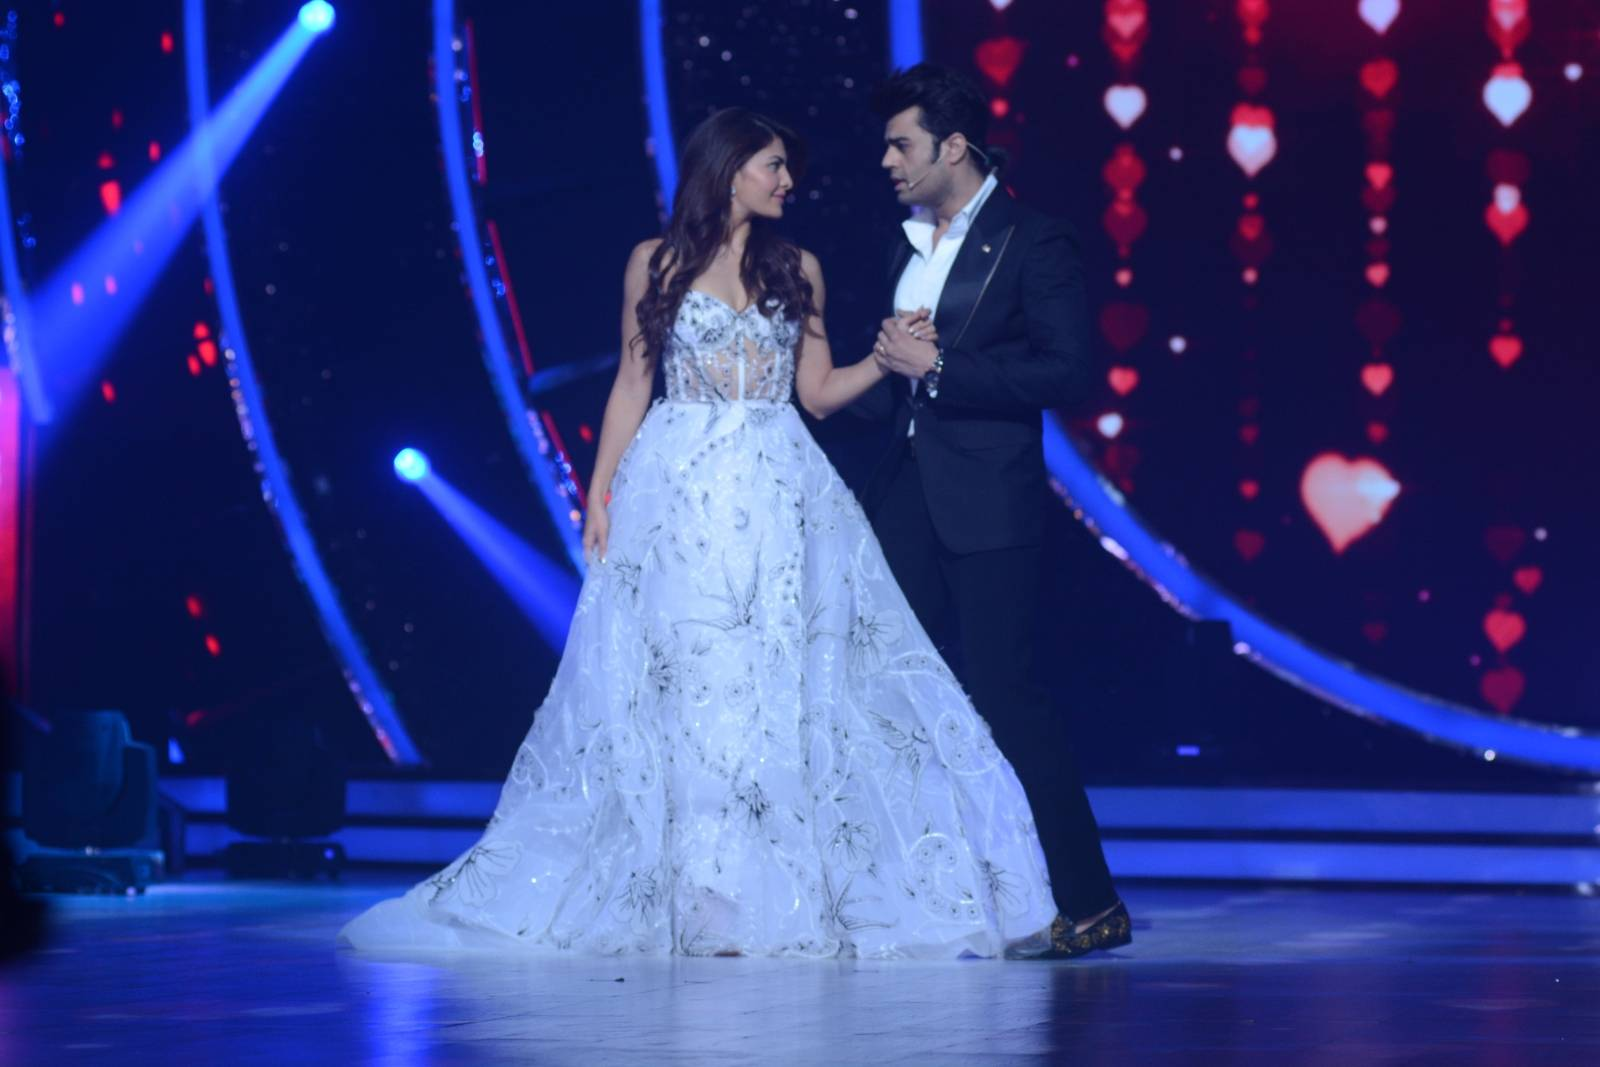 JDJ9 Finale: Cute moments of Jacqueline Fernandez With Manish Paul Perfectly Captured During The Season